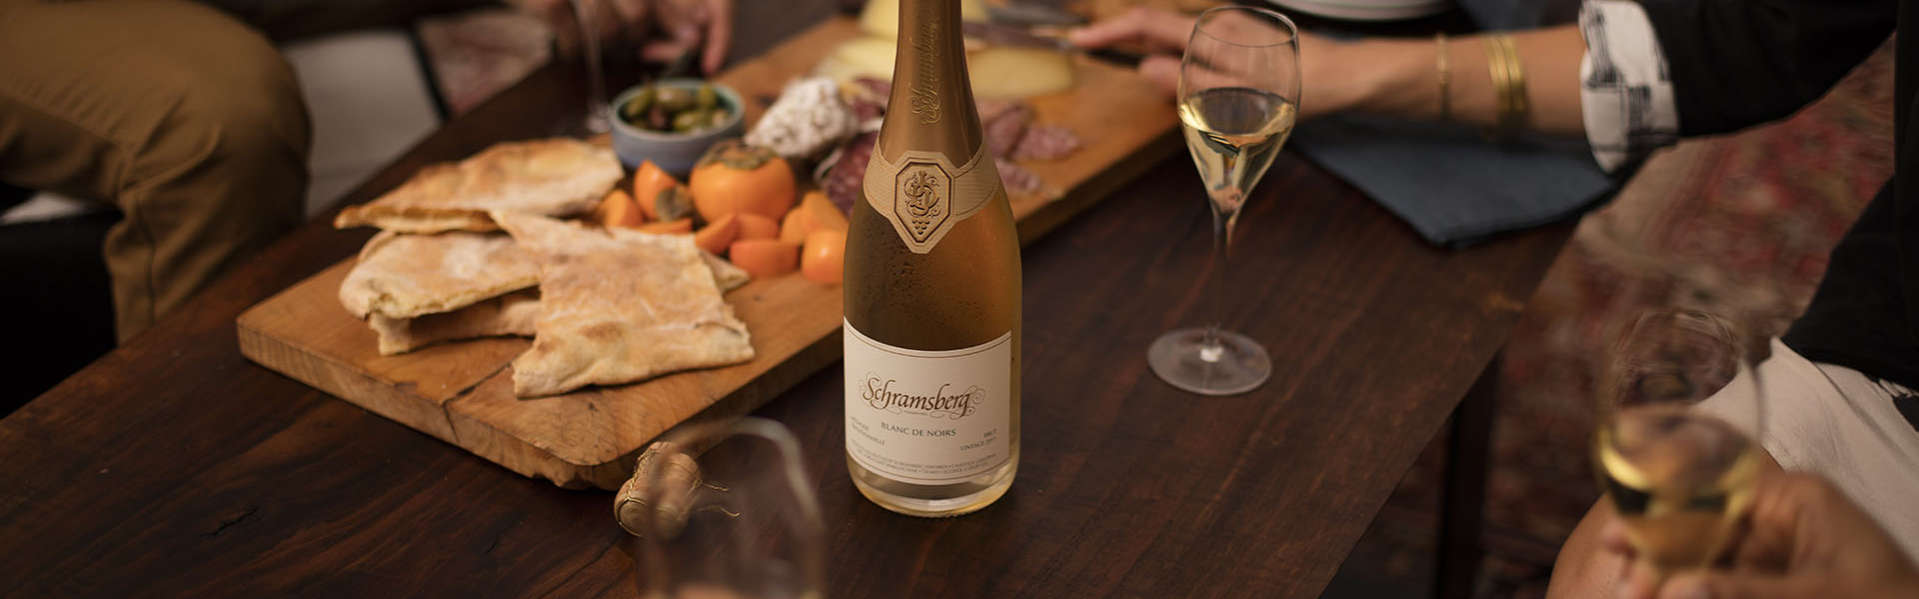 People around a coffee table enjoying Schramsberg Blancs de Noirs sparkling wine paired with a charcuterie board.